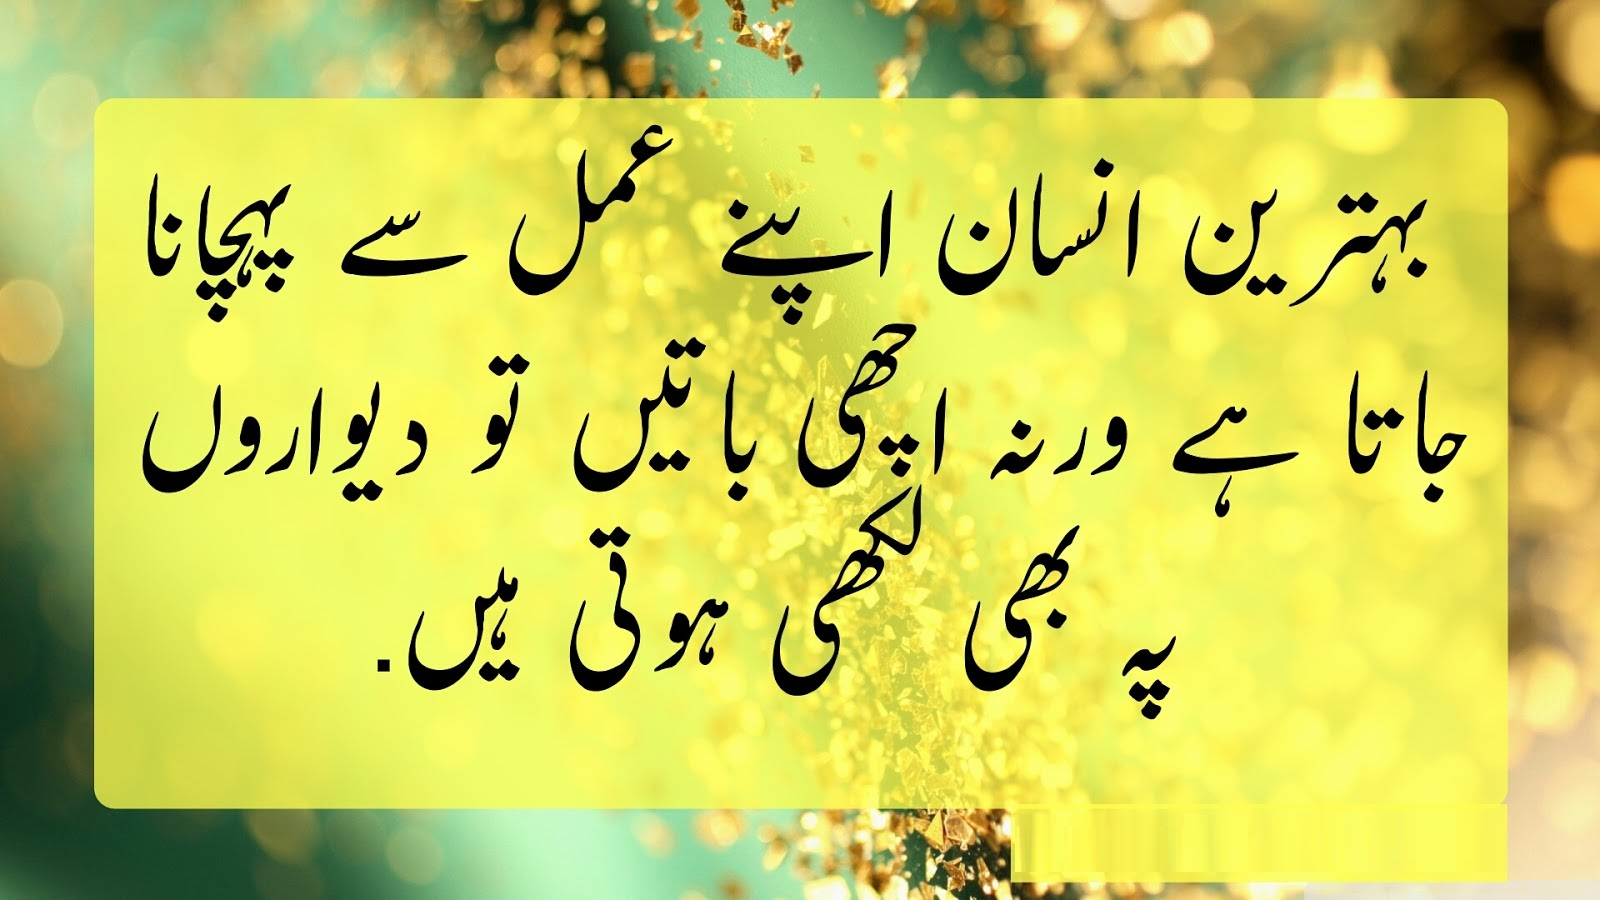 Funny Love Quotes In Urdu Pics : urdu shayari wallpaper,love shayari urdu,sad love,bewafa dost,sad urdu ...